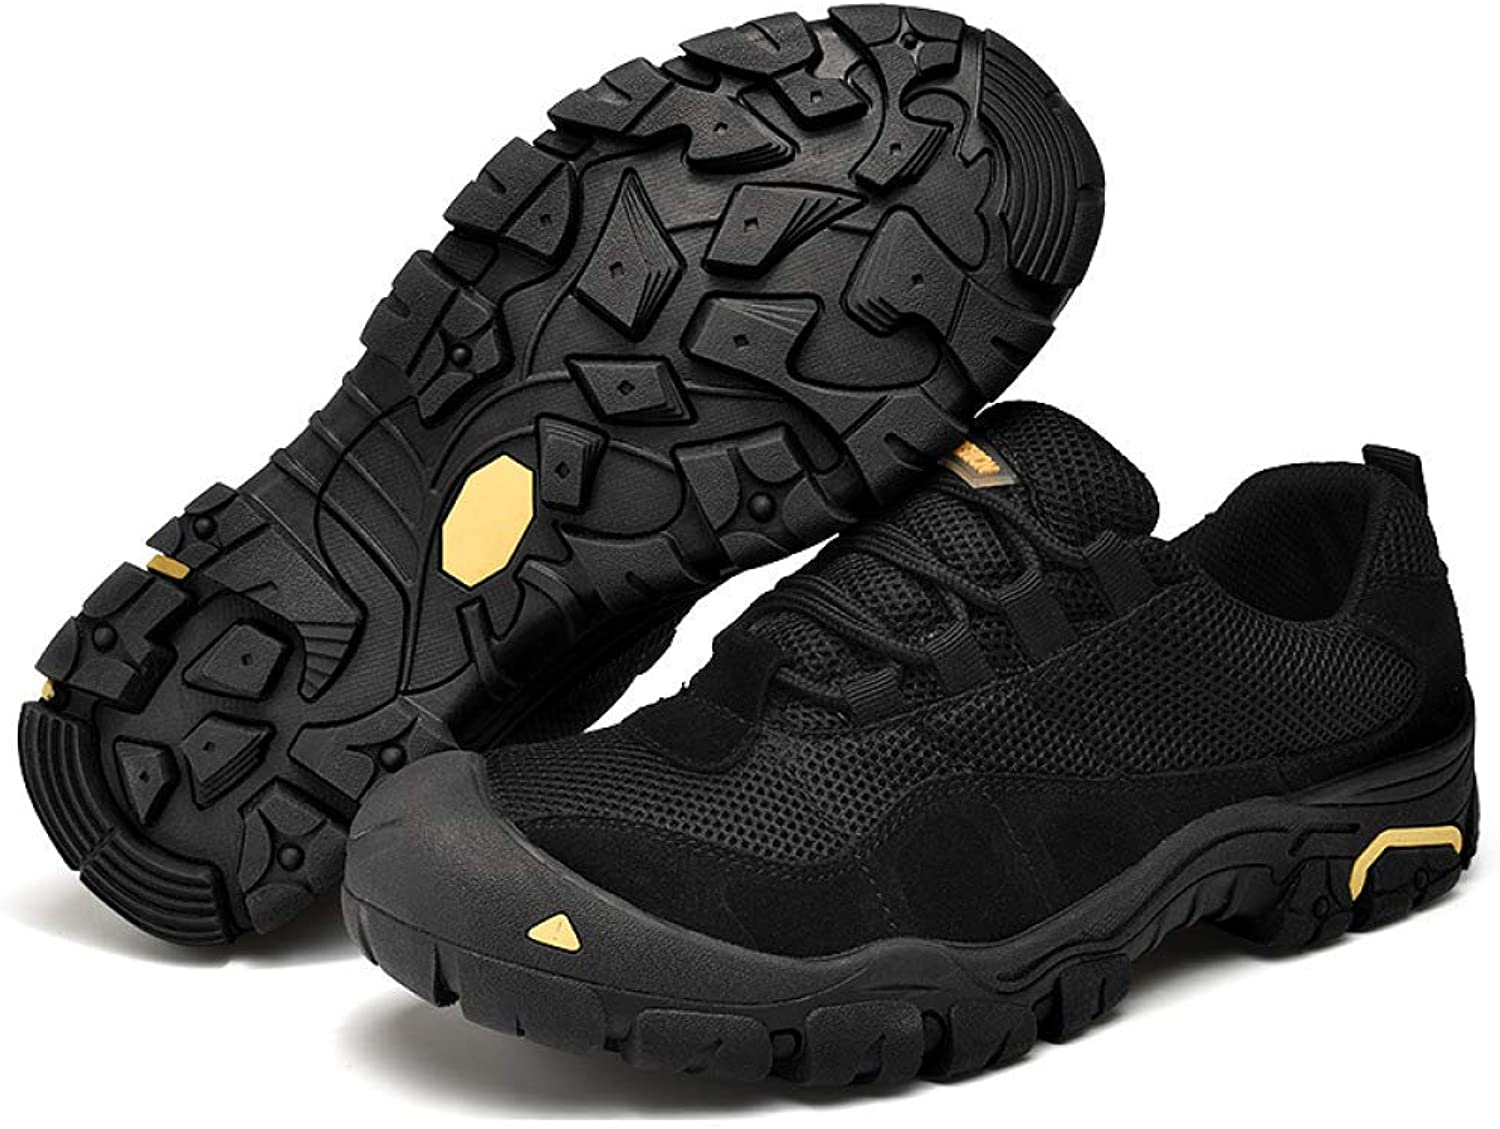 Haiyao Sports Men's shoes, shoes, Outdoor Hiking shoes, Non-Slip Wearable Walking shoes, Breathable Mesh